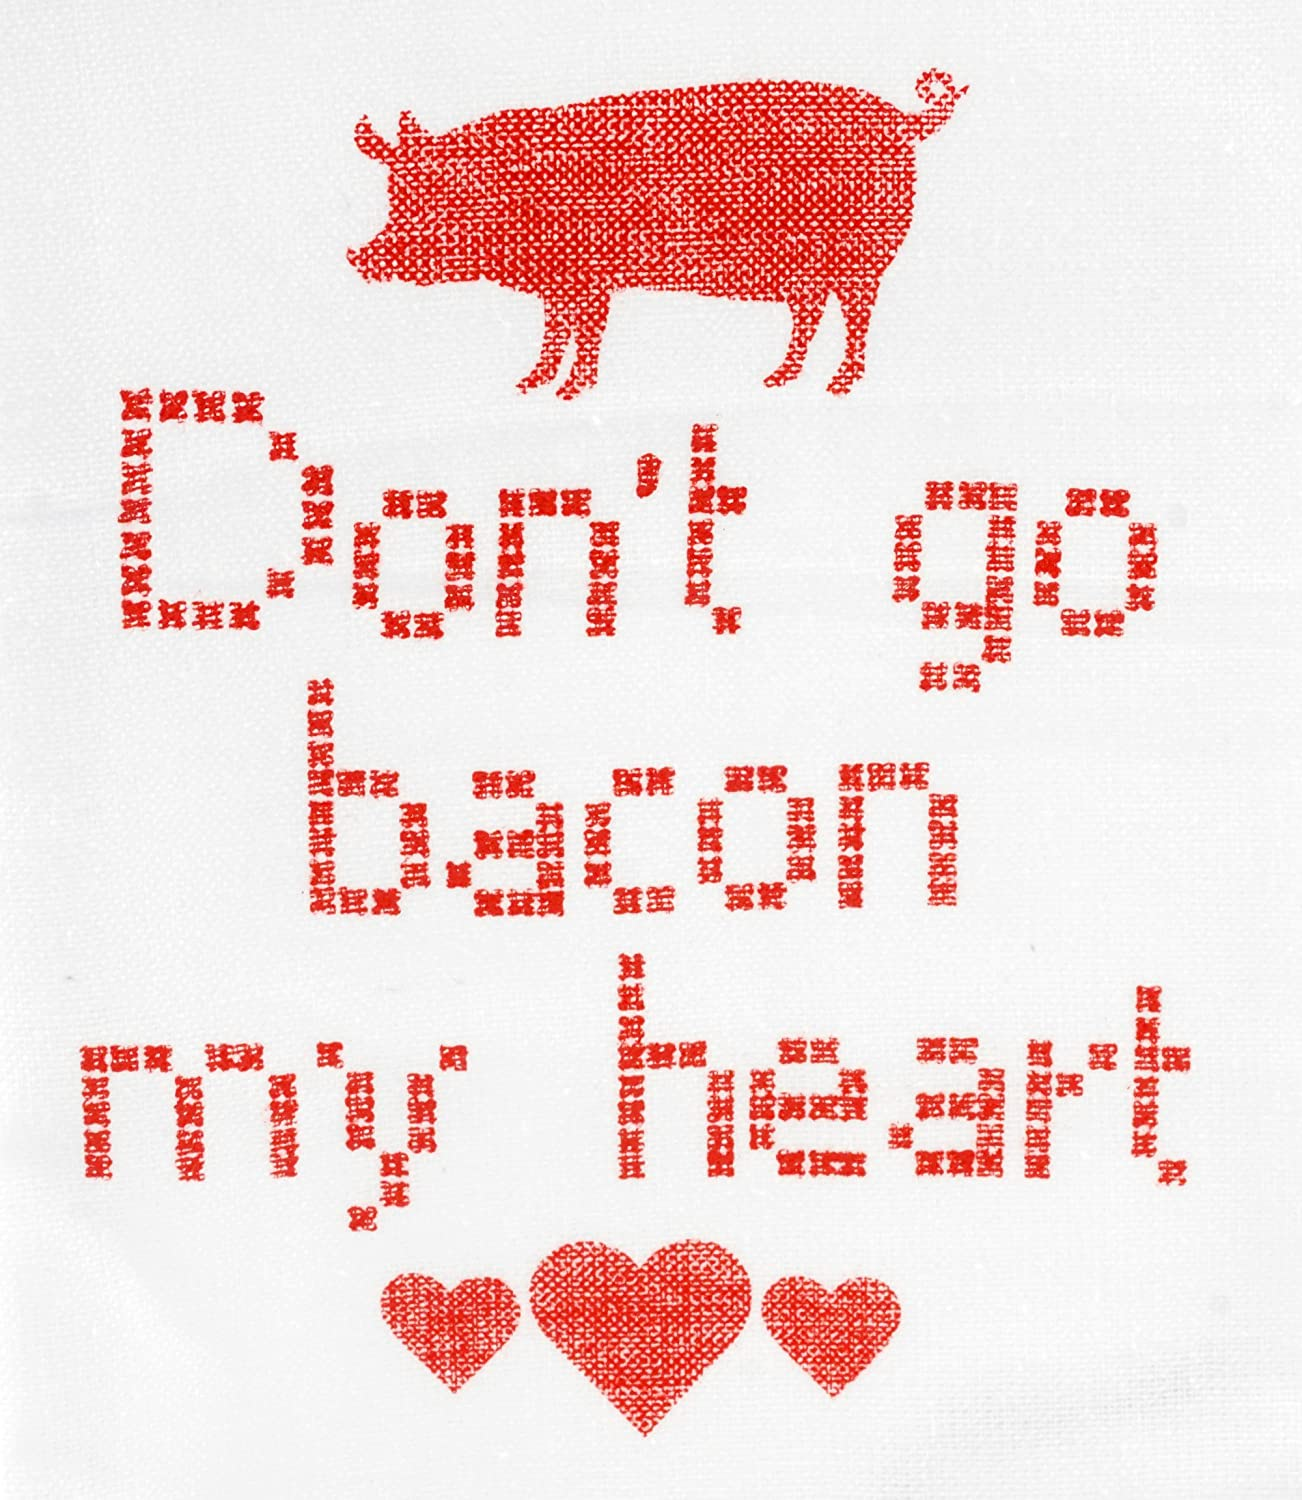 Black Party Explosions/® Dont Go Bacon My Heart Cross Stitch Style Tea Towel